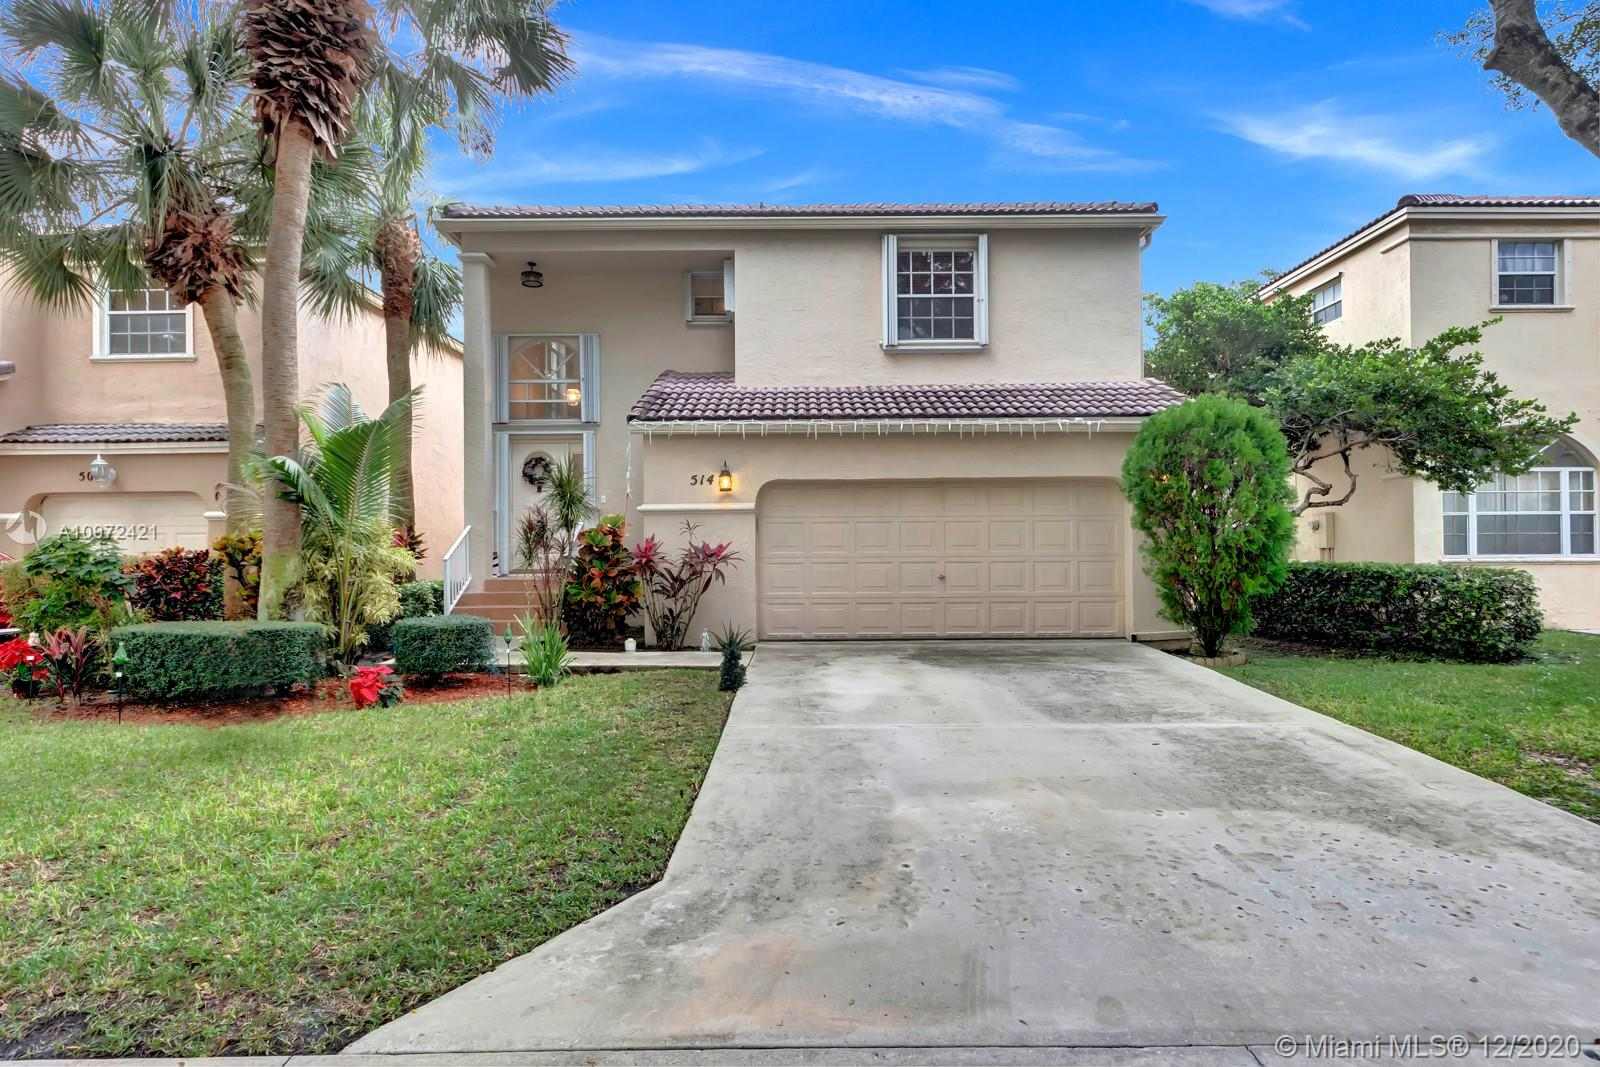 Take advantage of this rare opportunity at Governors Walk, Ramblewood South! This home has one of the largest  yards in the community and is exceptionally convenient to everything from great schools, malls, gas stations, golf courses, highly rated dining, sawgrass expressway, and much more. Zip down Atlantic Ave going East for a beach day! Enjoy the large foyer, two car garage, three bedrooms, and two and a half bathrooms. The back yard is ready for you to make your own and is more than large enough to add a pool, or stroll over to the residential pool!